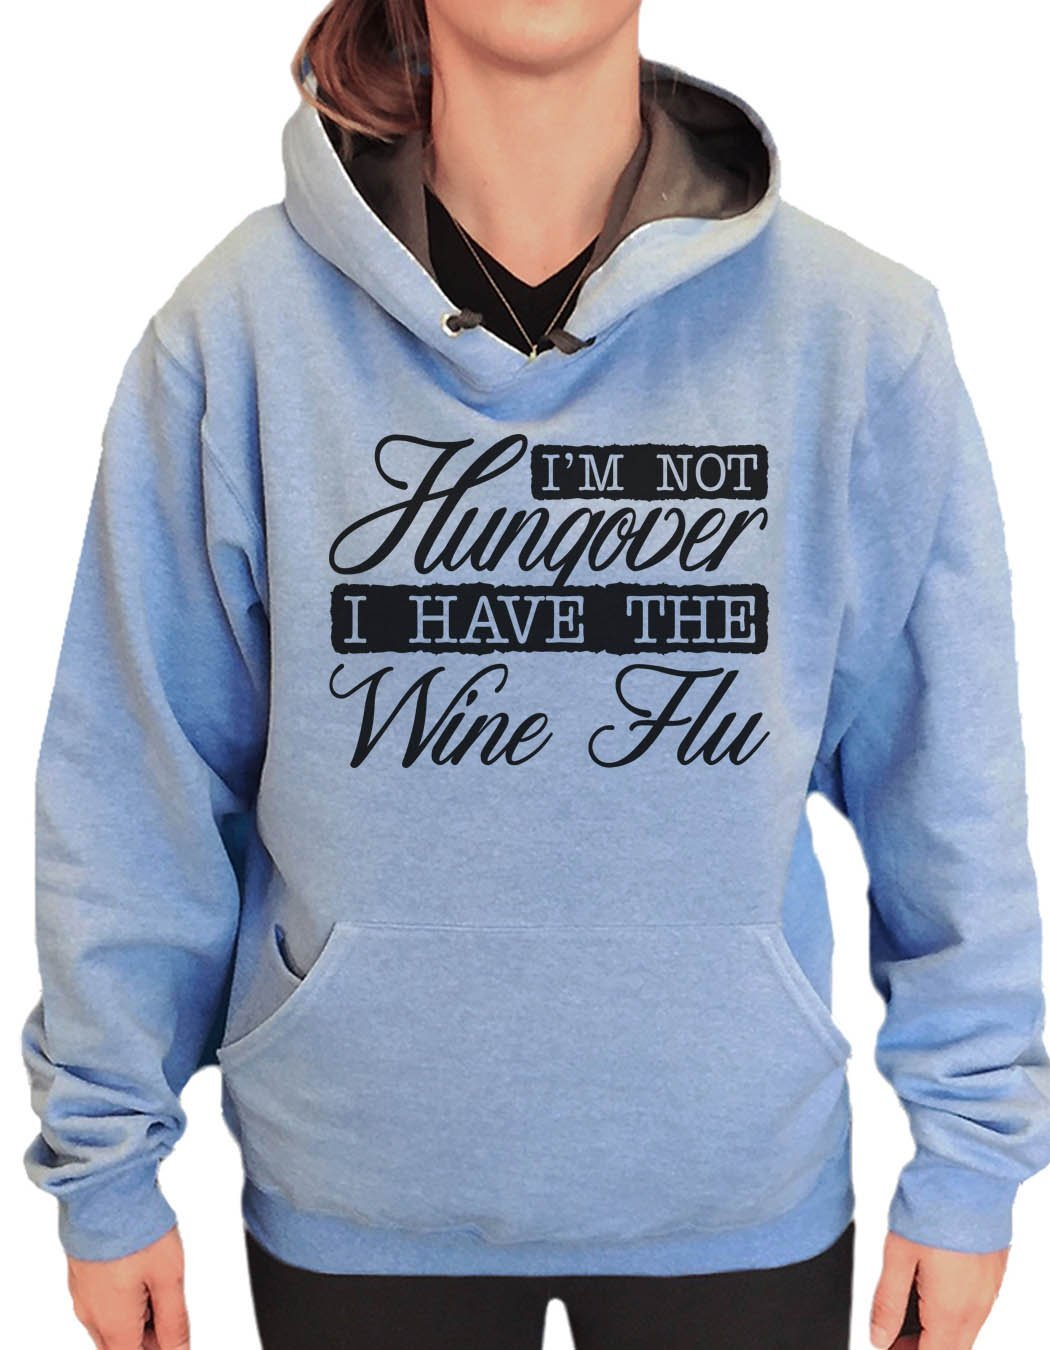 UNISEX HOODIE - I'm Not Hungover I Have The Wine Flu - FUNNY MENS AND WOMENS HOODED SWEATSHIRTS - 2139 Funny Shirt Small / North Carolina Blue